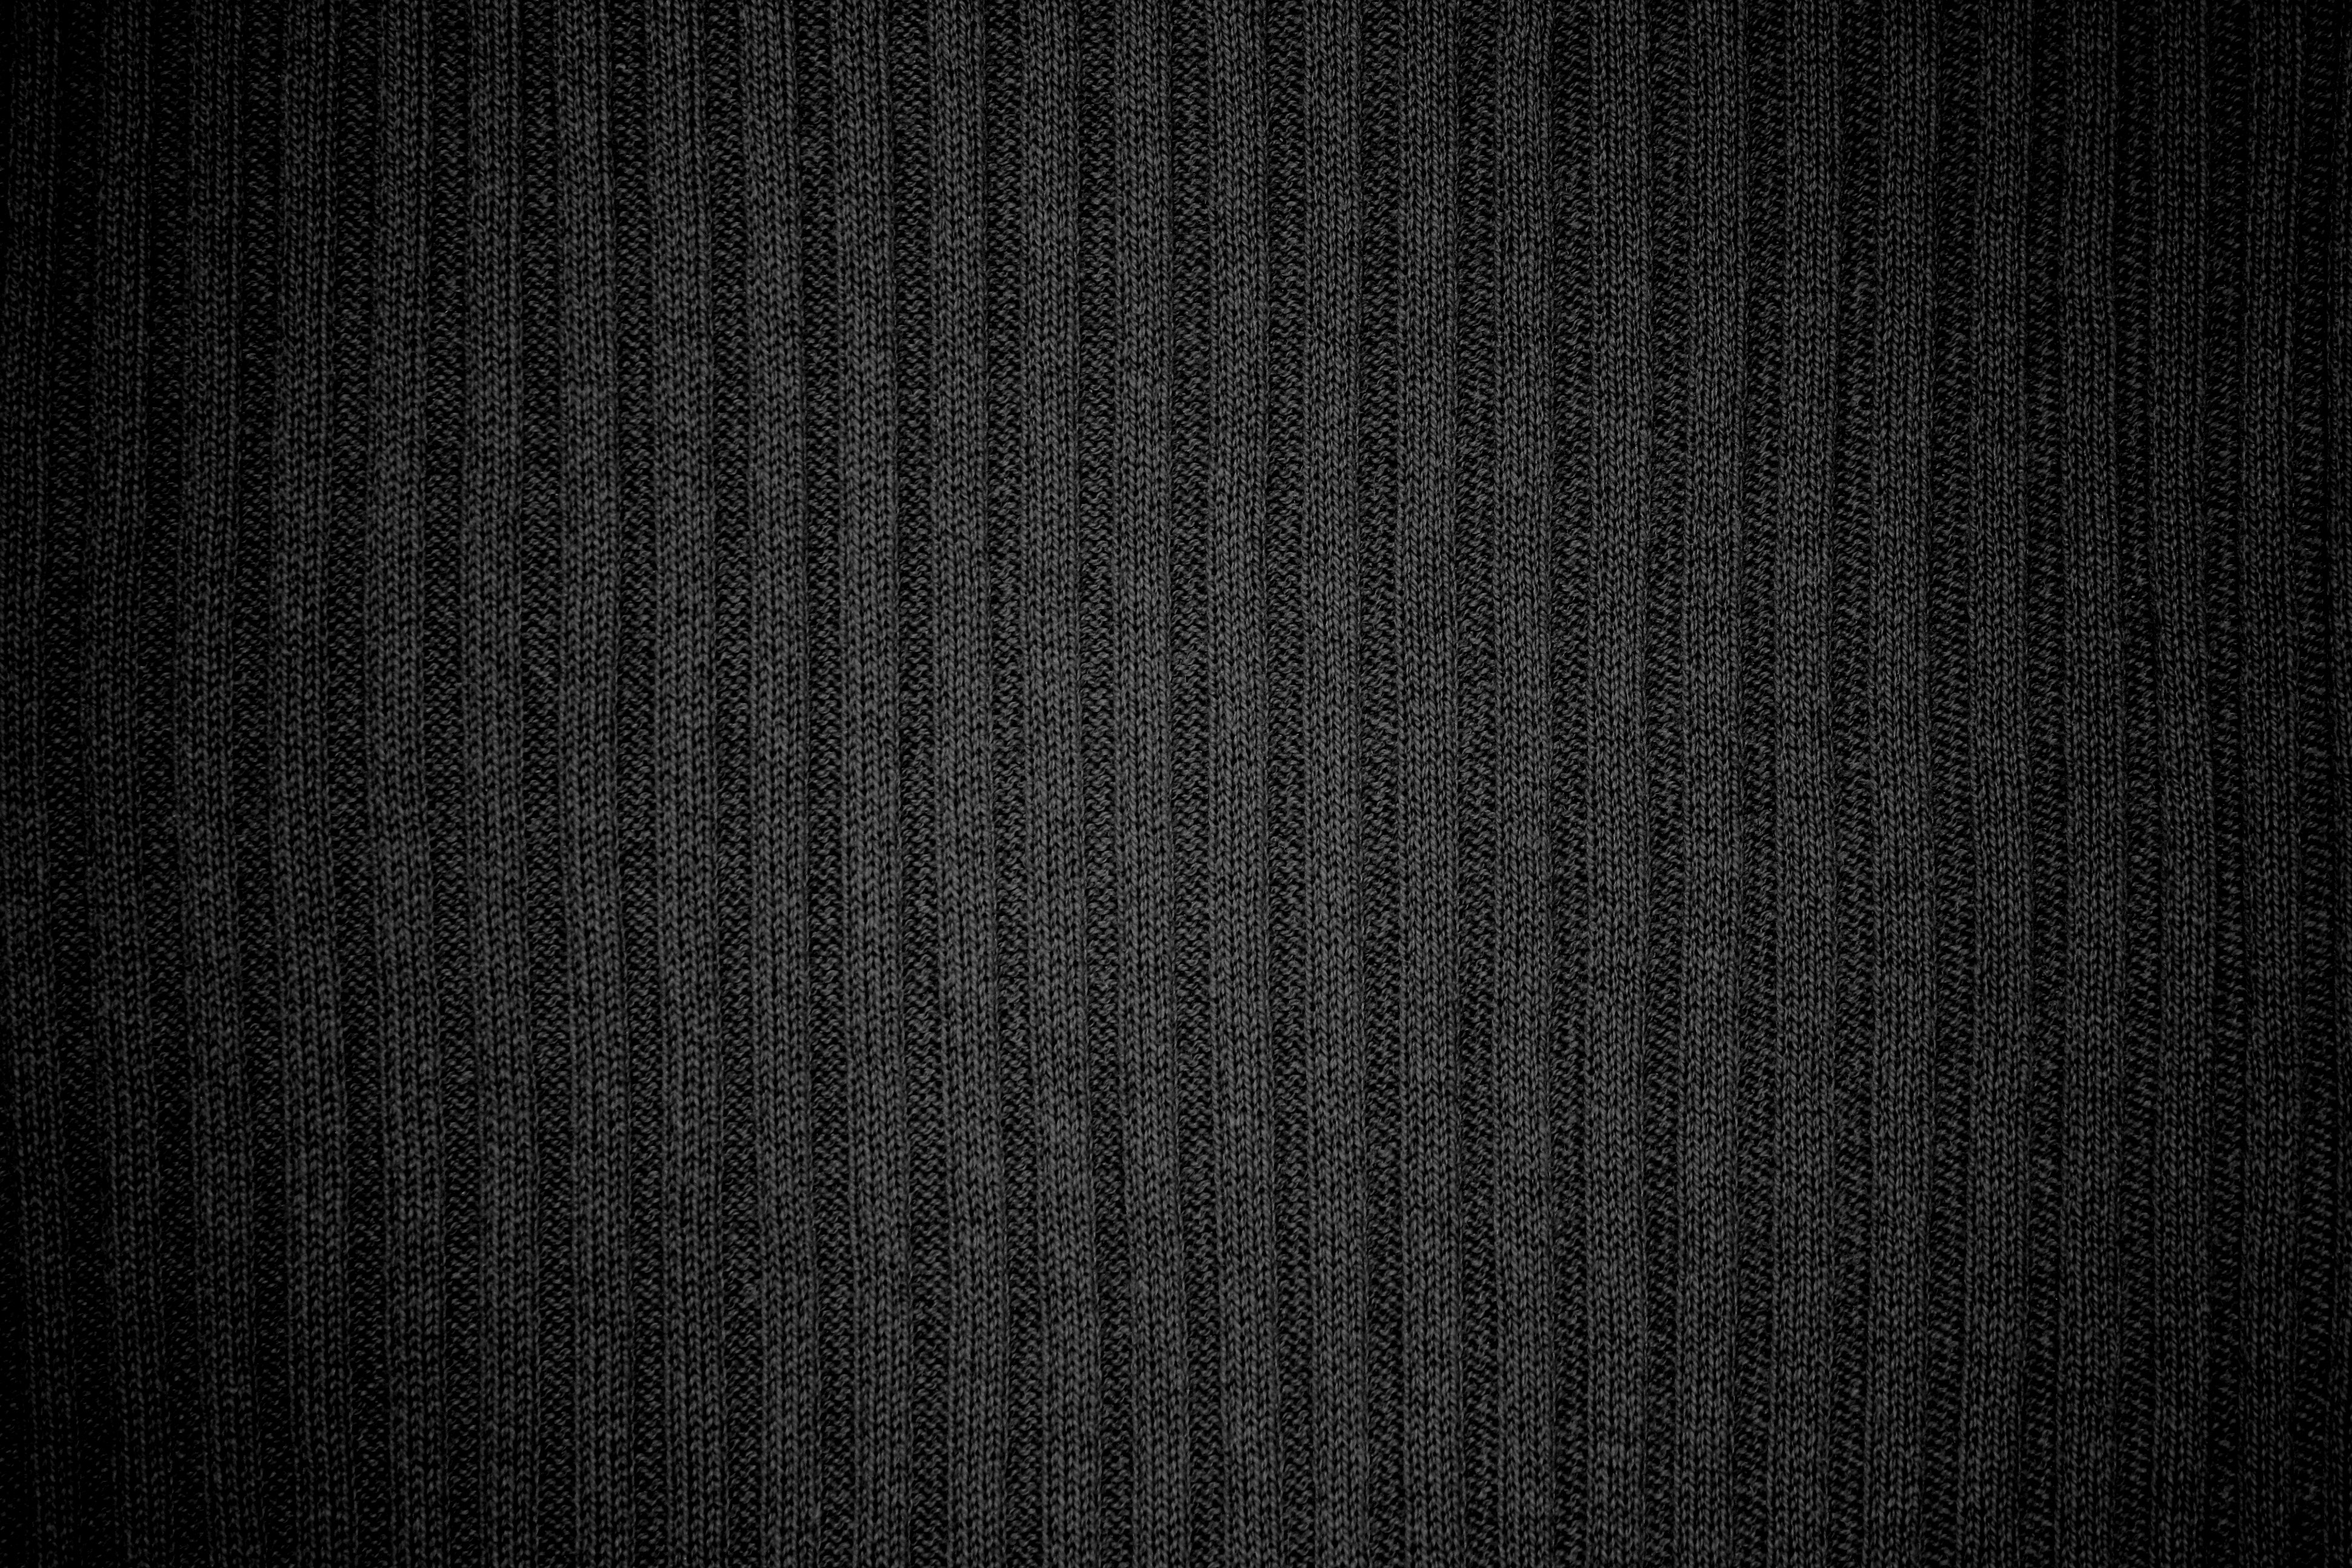 Black Ribbed Knit Fabric Texture Picture Free Photograph Photos